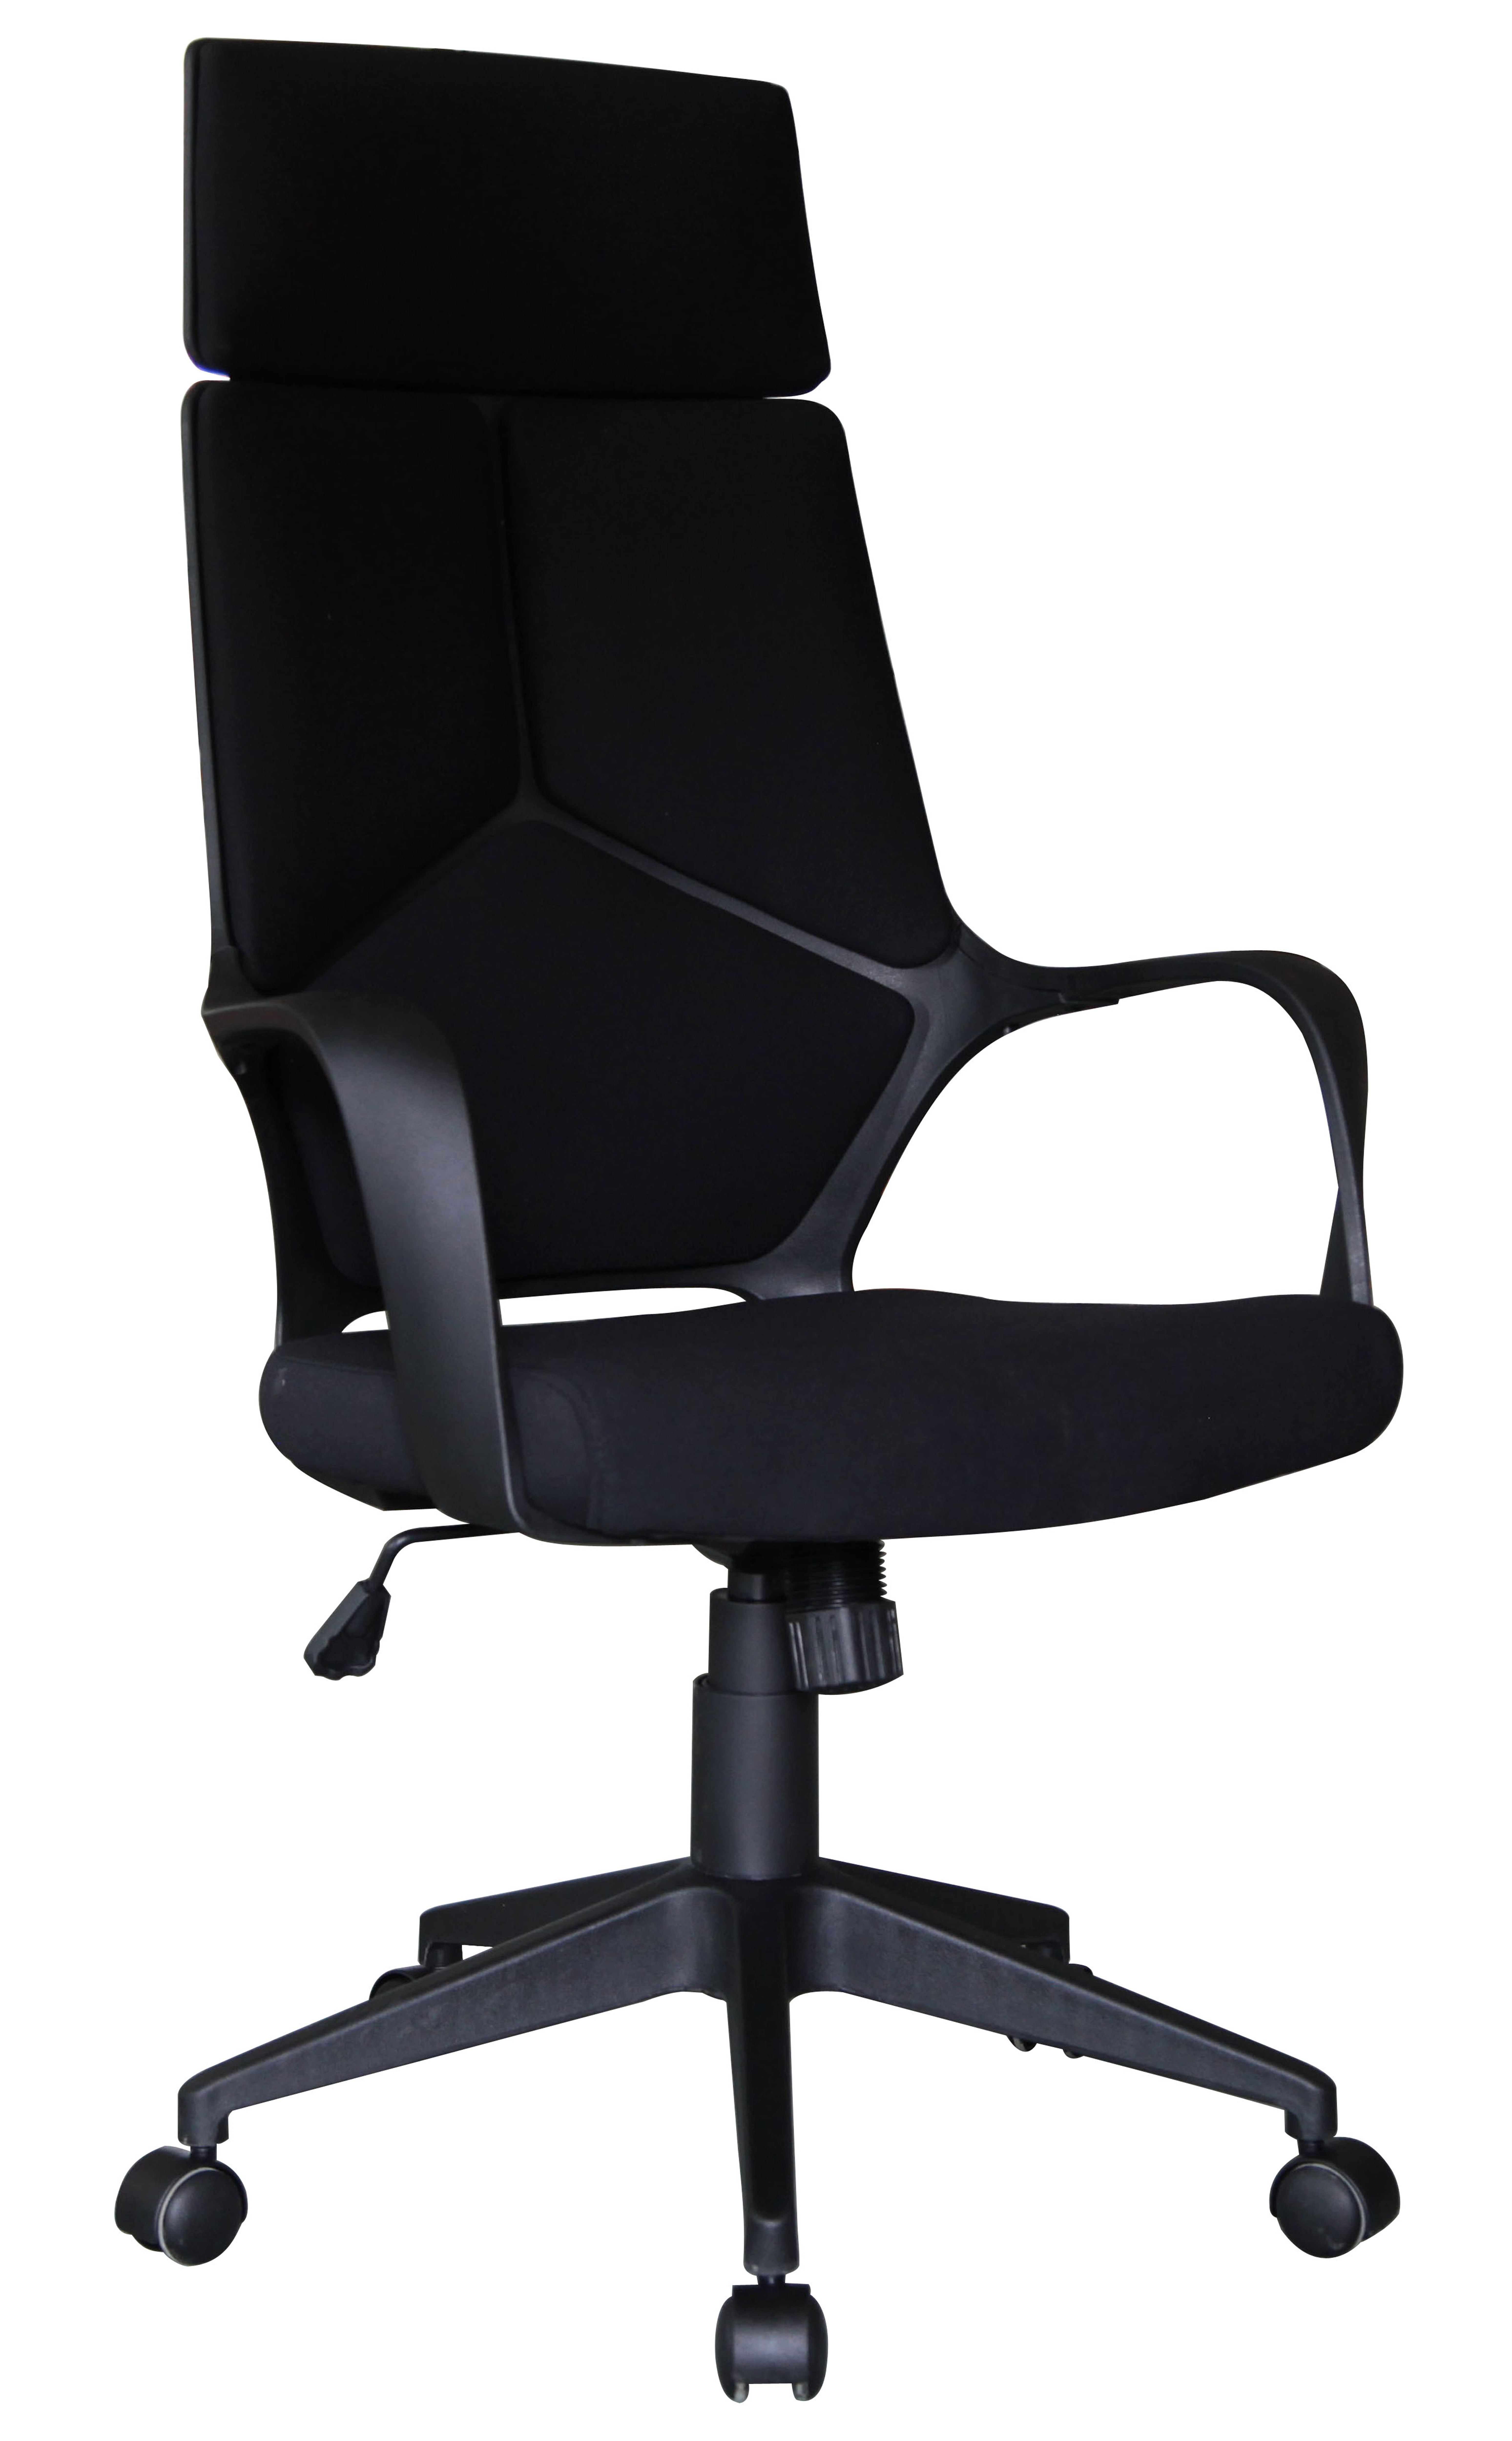 desk office the total chairs chair shop furniture ergonomic seating toronto licence global casegoods desks